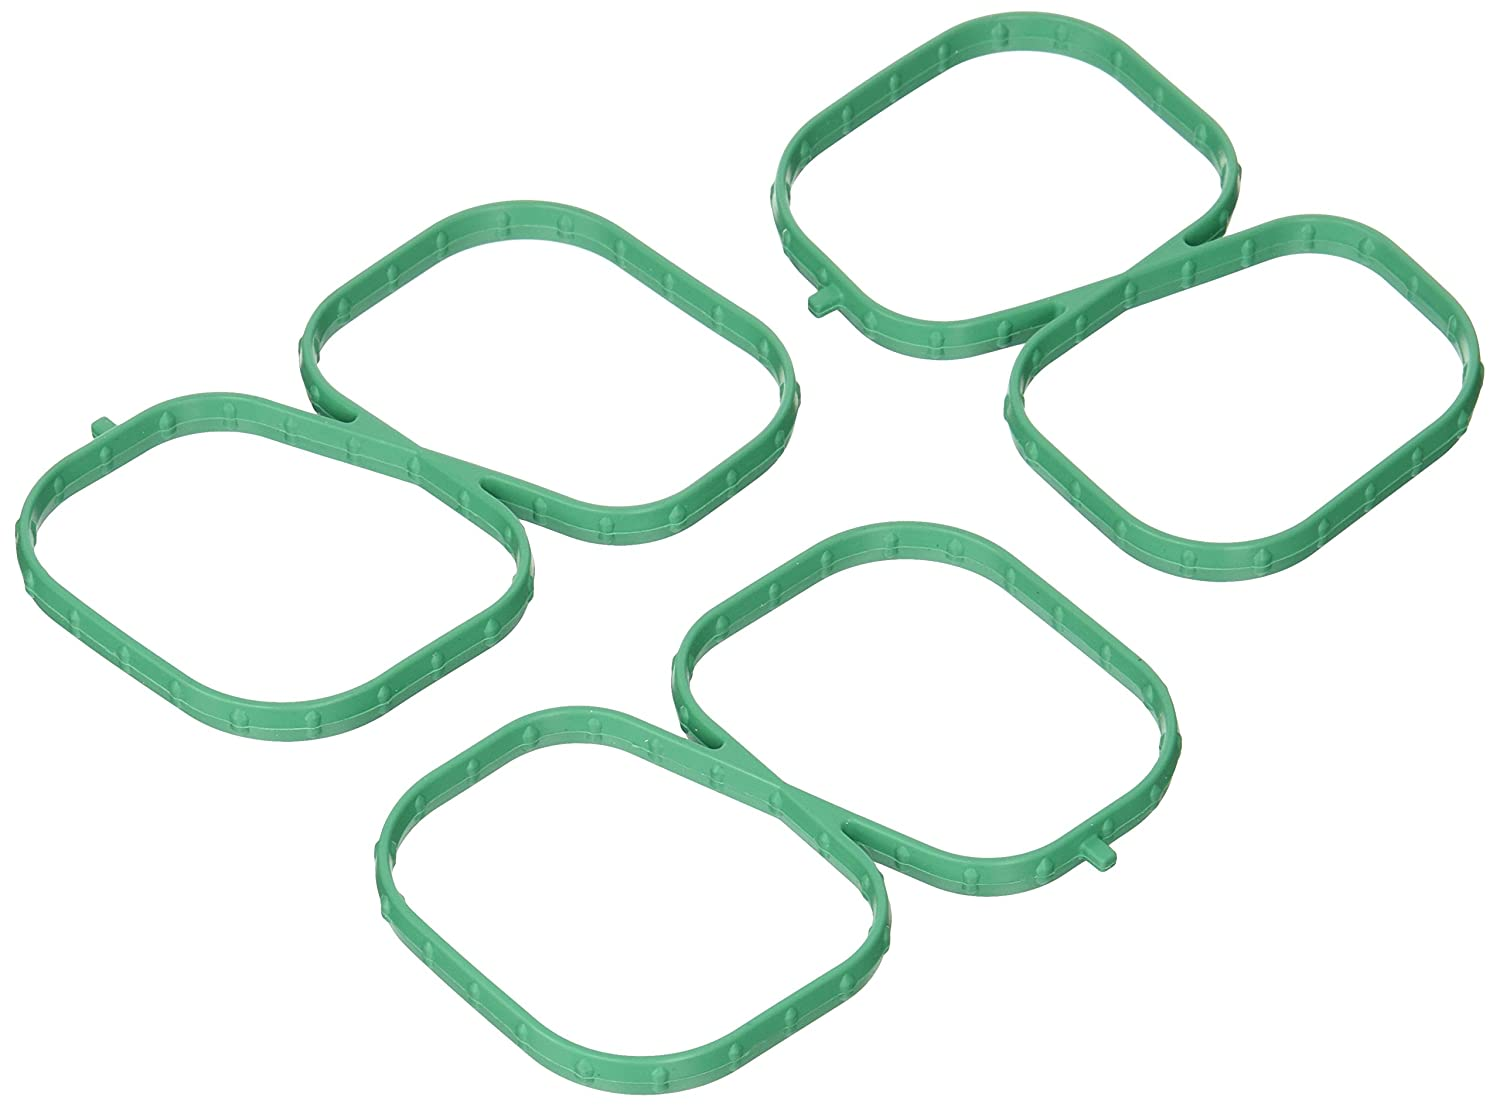 MAHLE Original MS19557 Fuel Injection Plenum Gasket Set